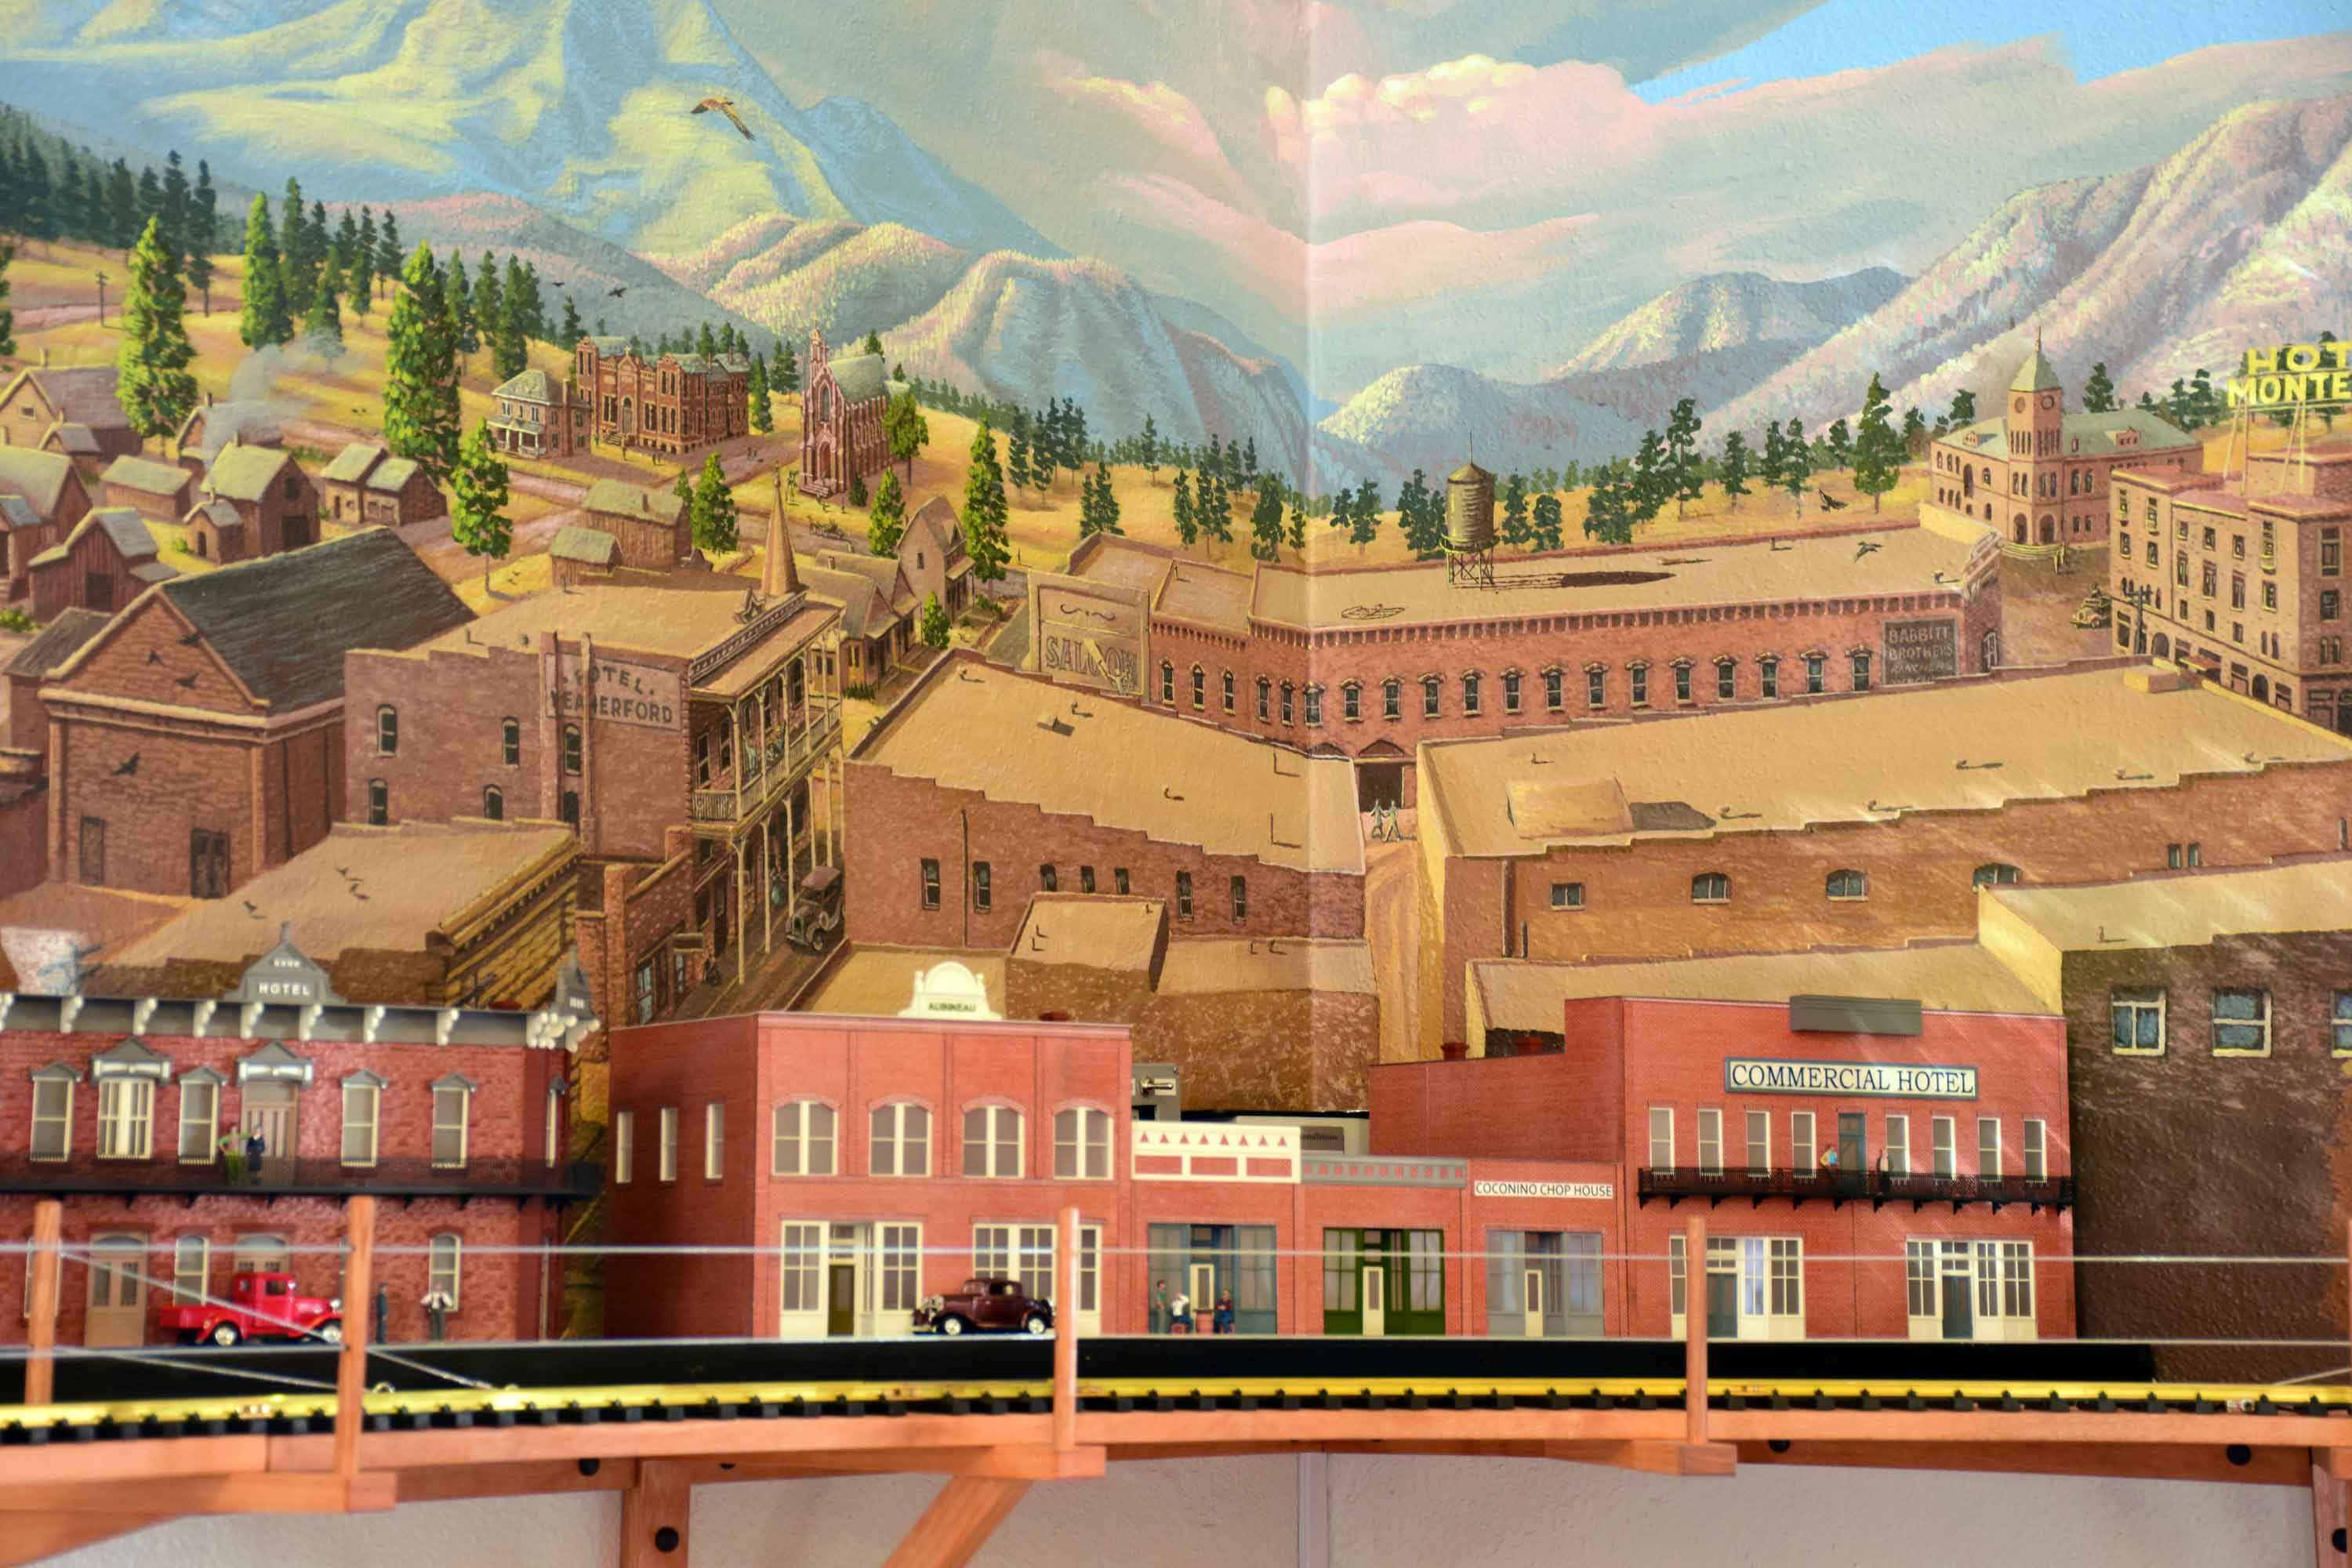 Flagstaff Visitor Center Mural 8